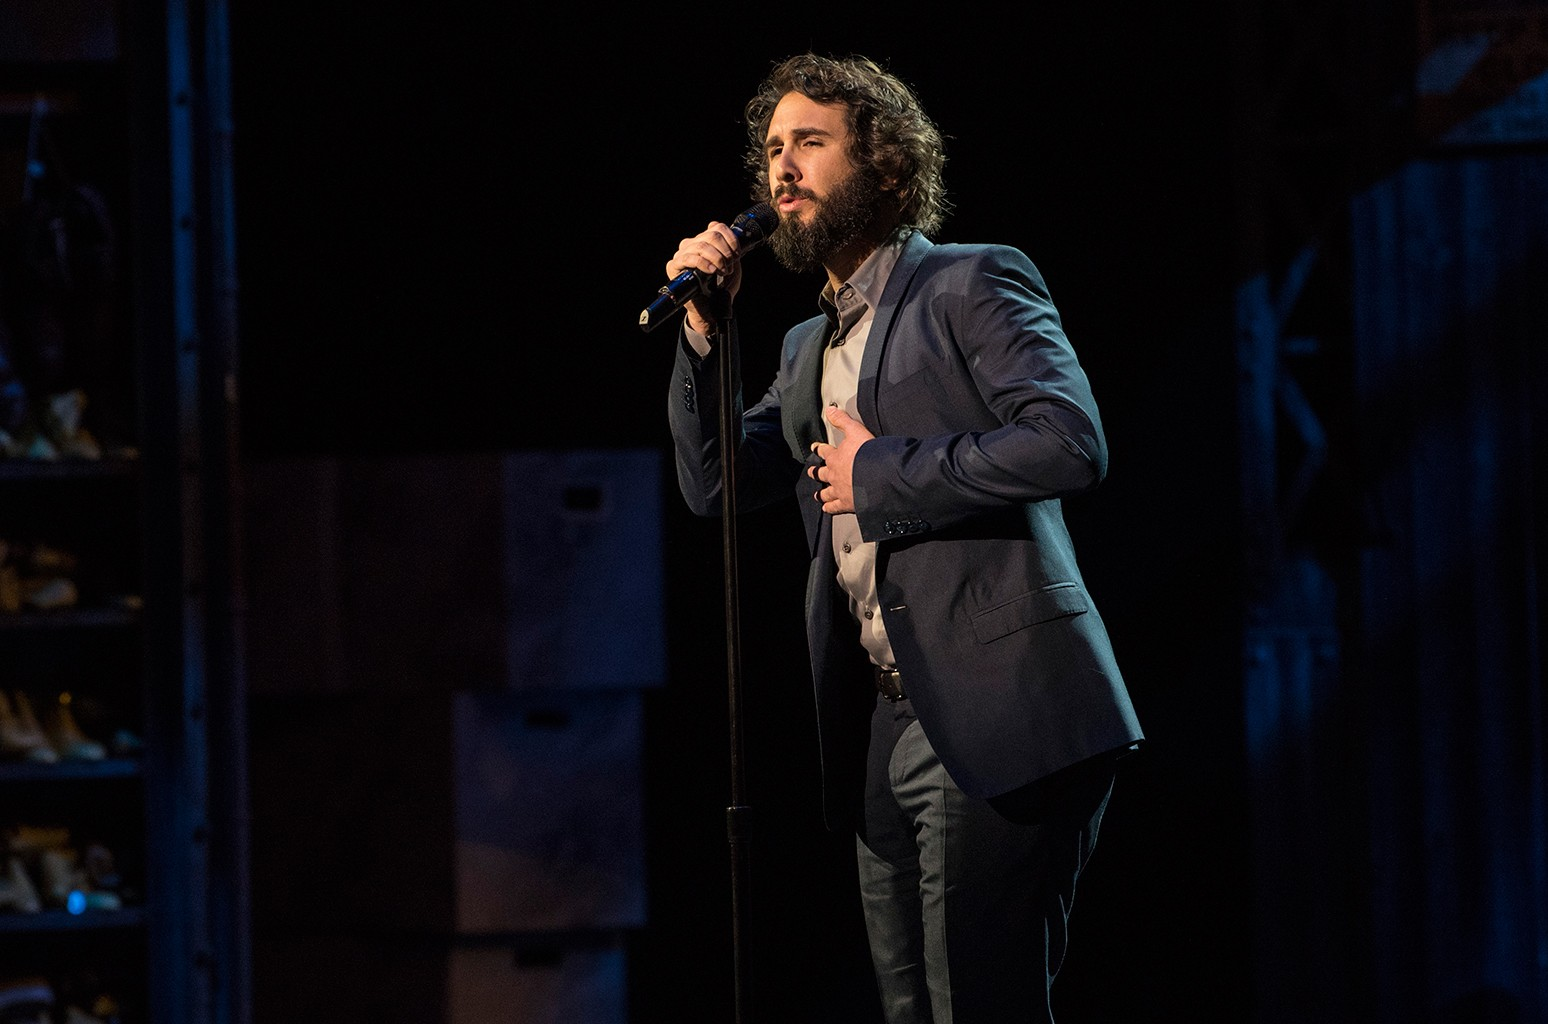 Josh Groban performs at Broadway Backwards at the Al Hirschfeld Theatre on March 13, 2017 in New York City.